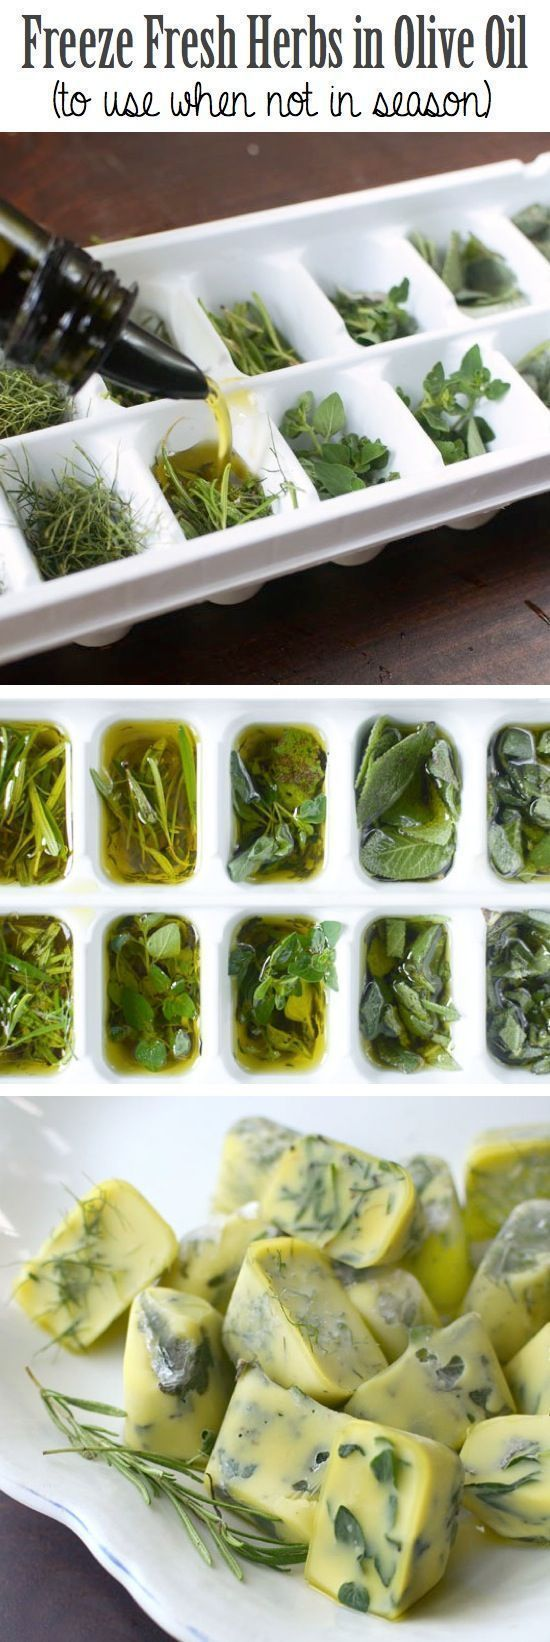 Freeze & Preserve Herbs In Olive Oil ~ Here's a new amazing way to shorten the time spent on kitchen and make your cooking way easier.